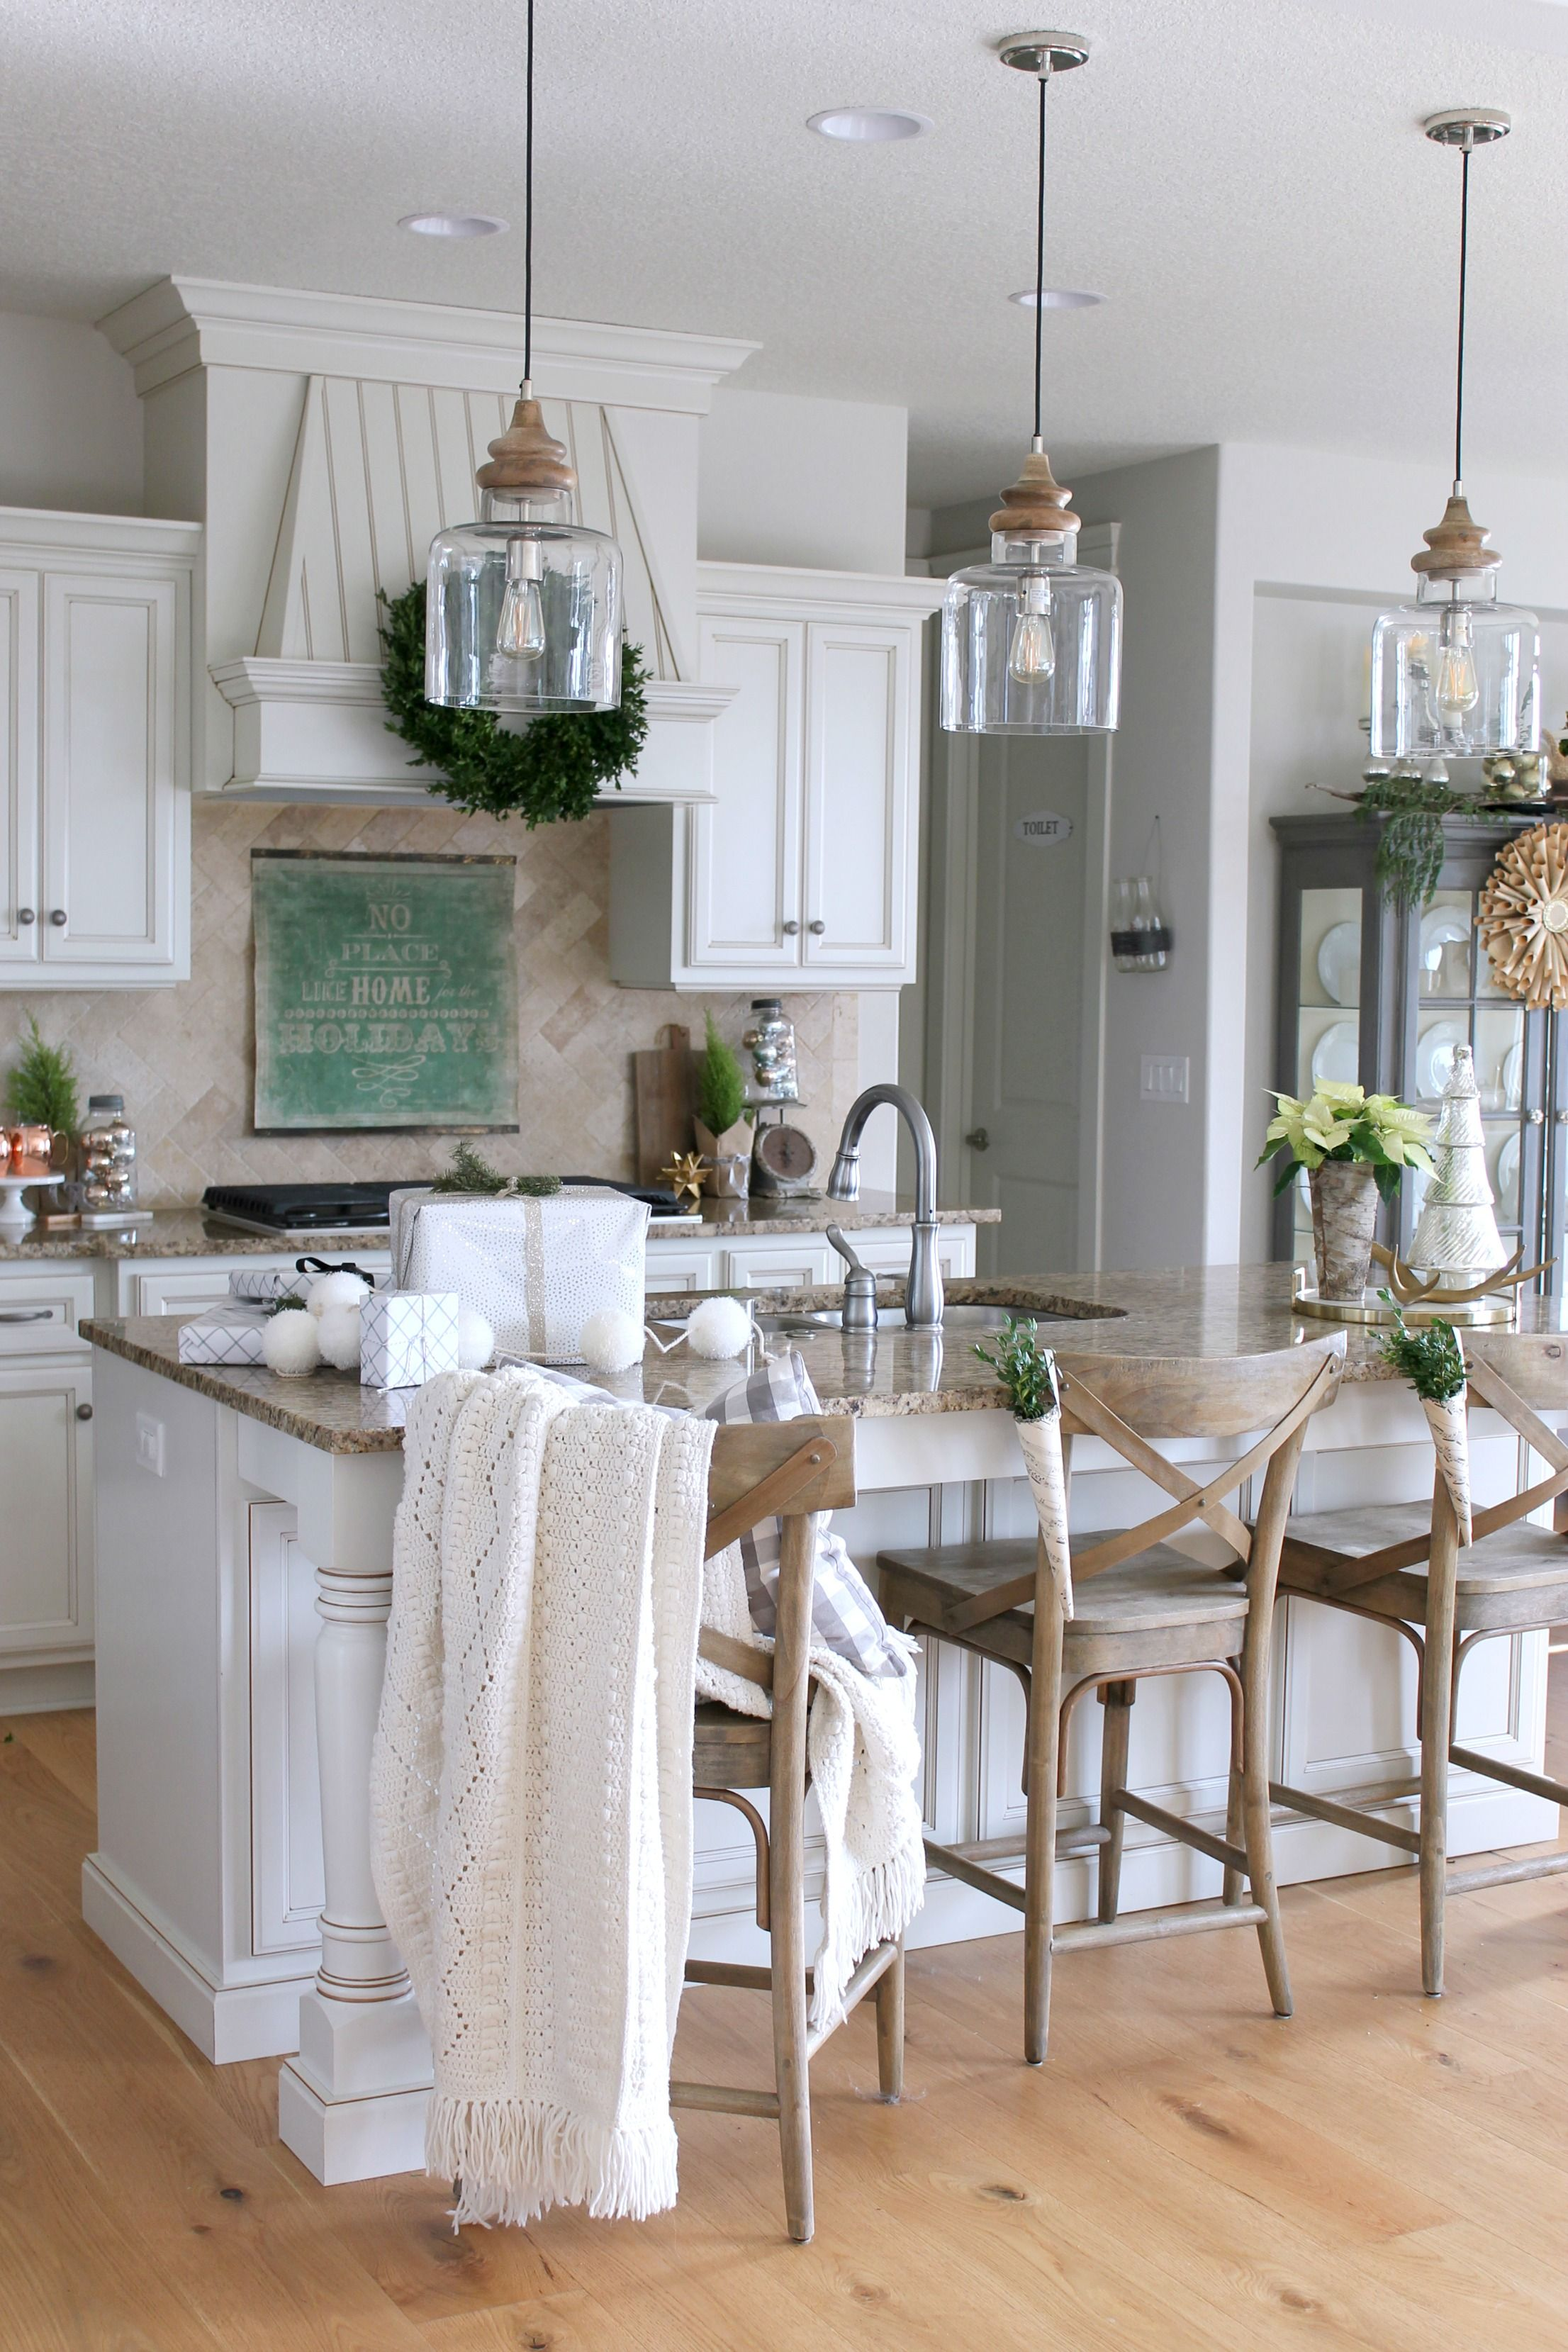 New Farmhouse Style Island Pendant Lights Kitchens Pinterest - Images of kitchen pendant lighting